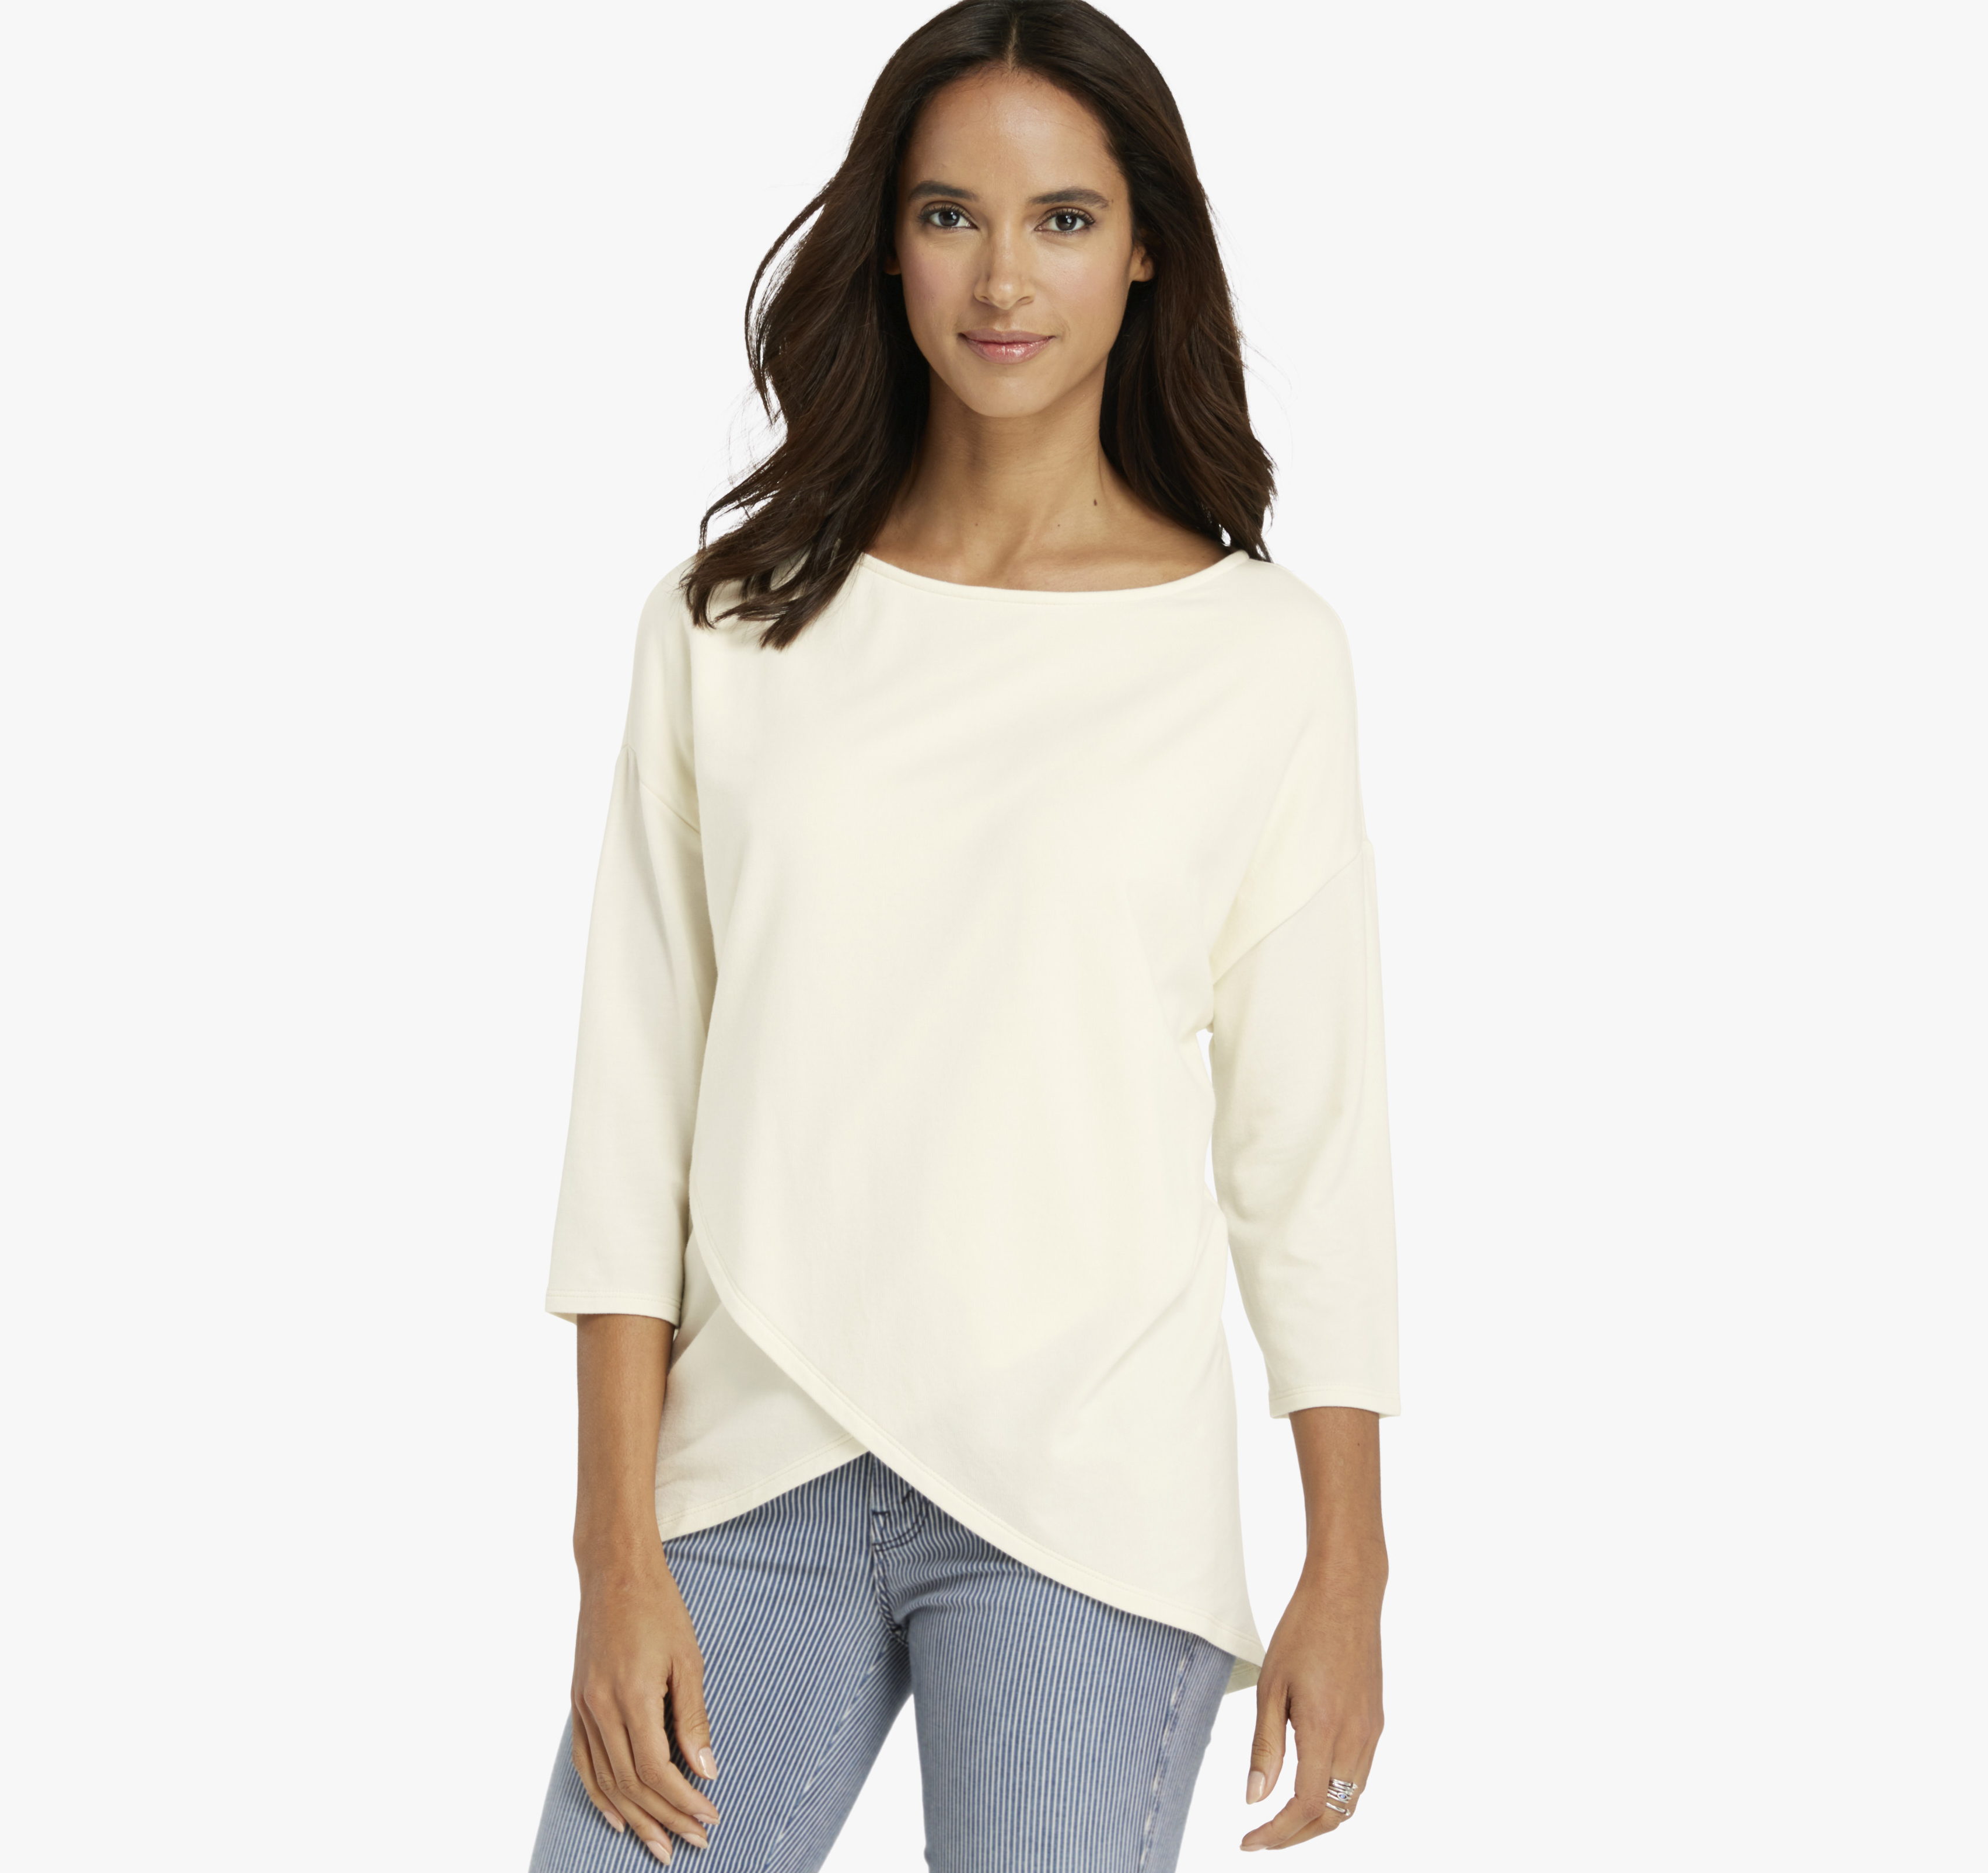 Shop for dolman sleeve top online at Target. Free shipping on purchases over $35 and save 5% every day with your Target REDcard.